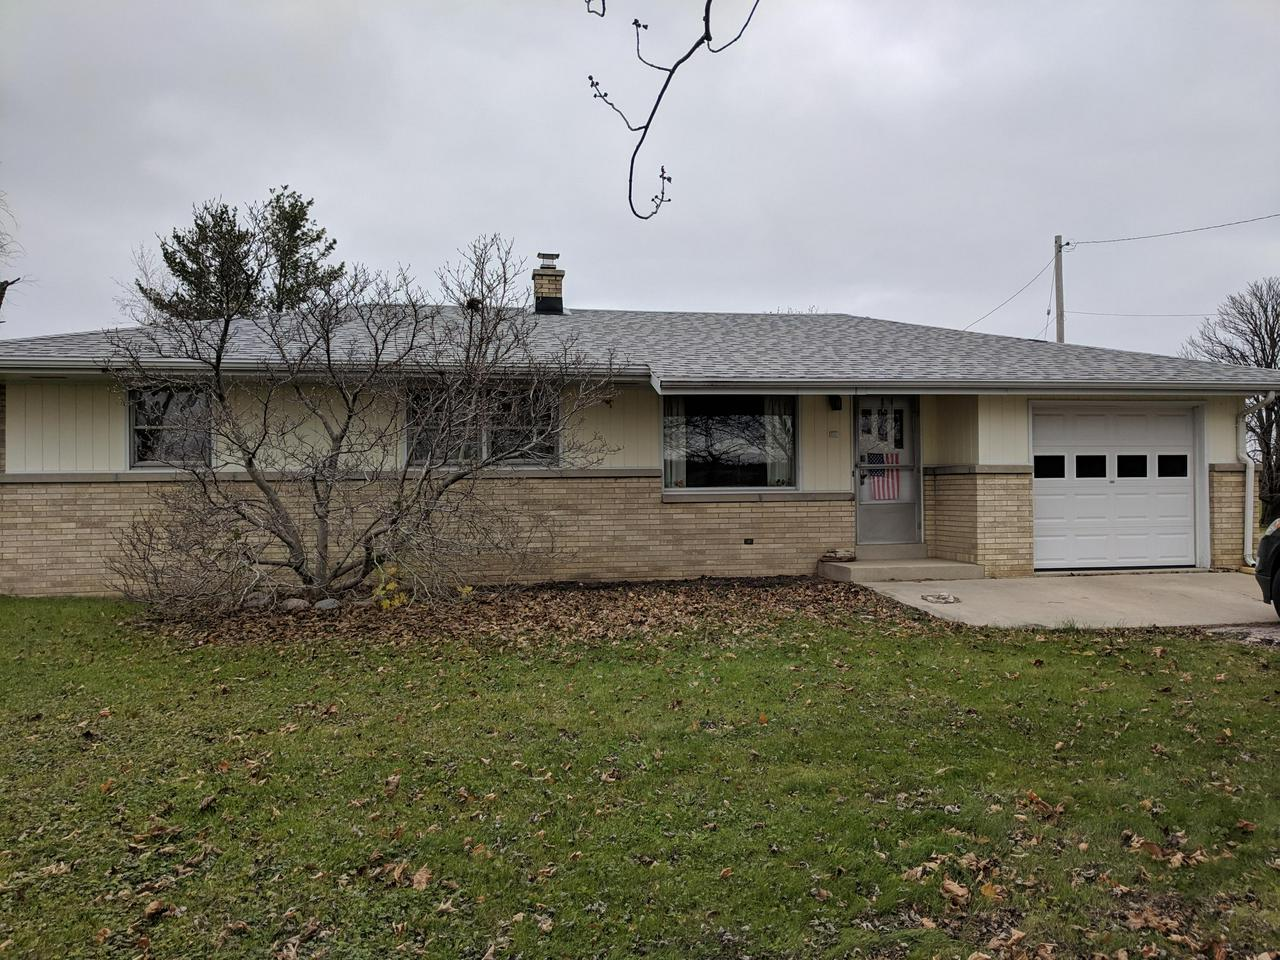 Town of Raymond 3 BR 1 BA ''1959'' ranch being sold by the original owner on 1 1/2 acres. 1/1/2 car attached garage and a separate 30 X 24 detached garage with cement floor. Basement has partially  finished rec room.  Great well cared for starter home on a quiet country road. Great Schools!